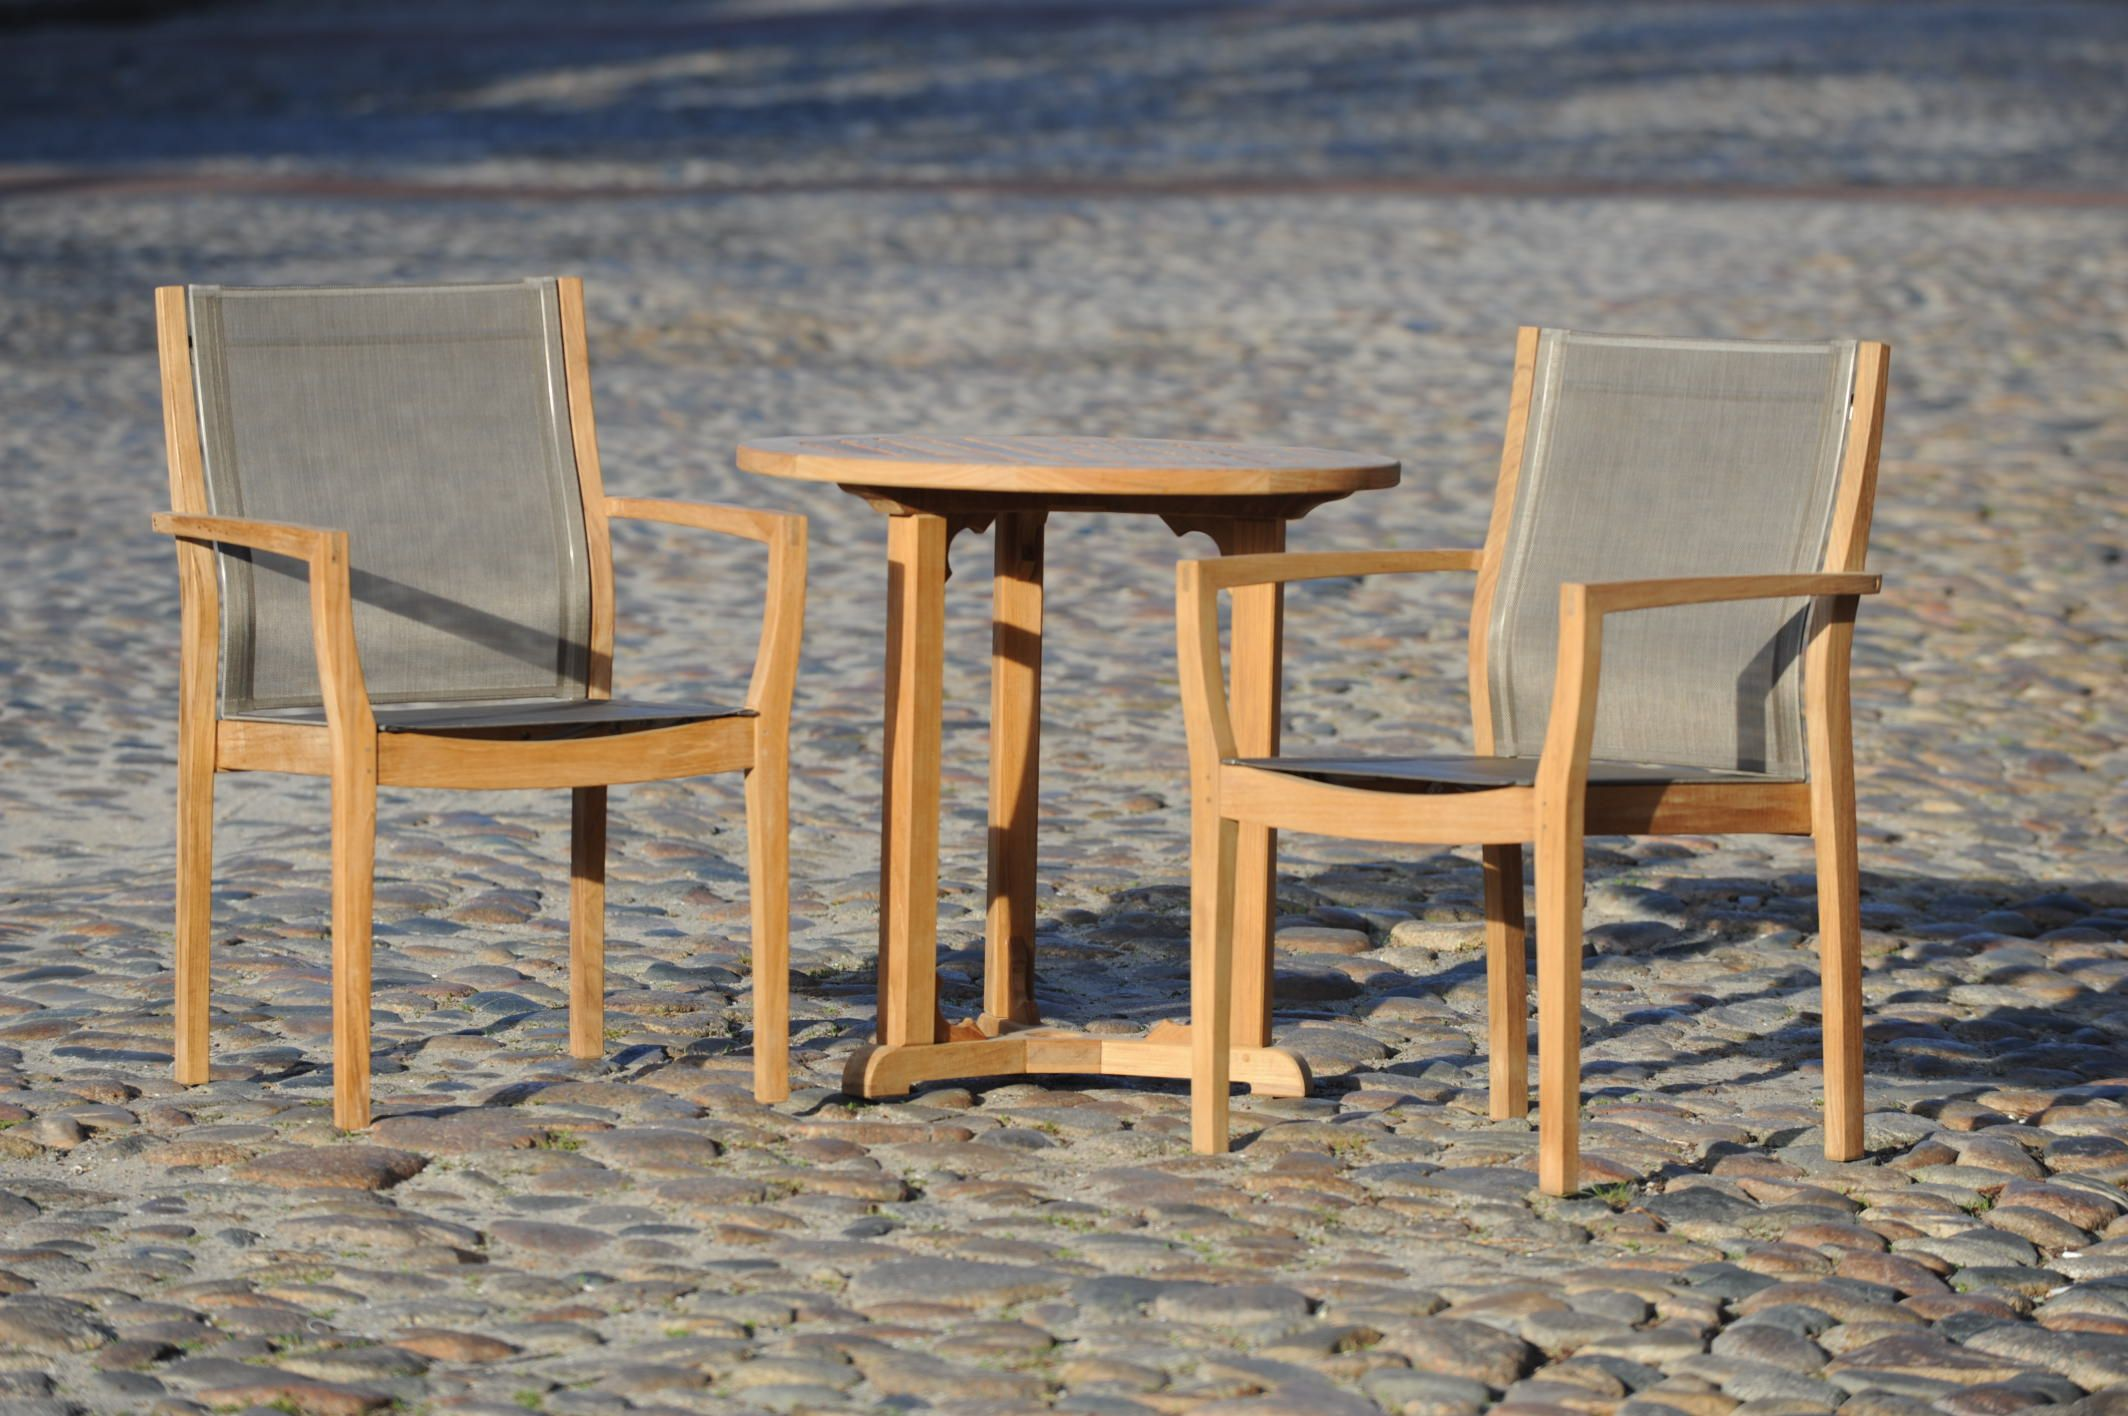 Barlow Tyre Horizon Dining Chair Enjoy Some Time On The Streets Of Nantucket